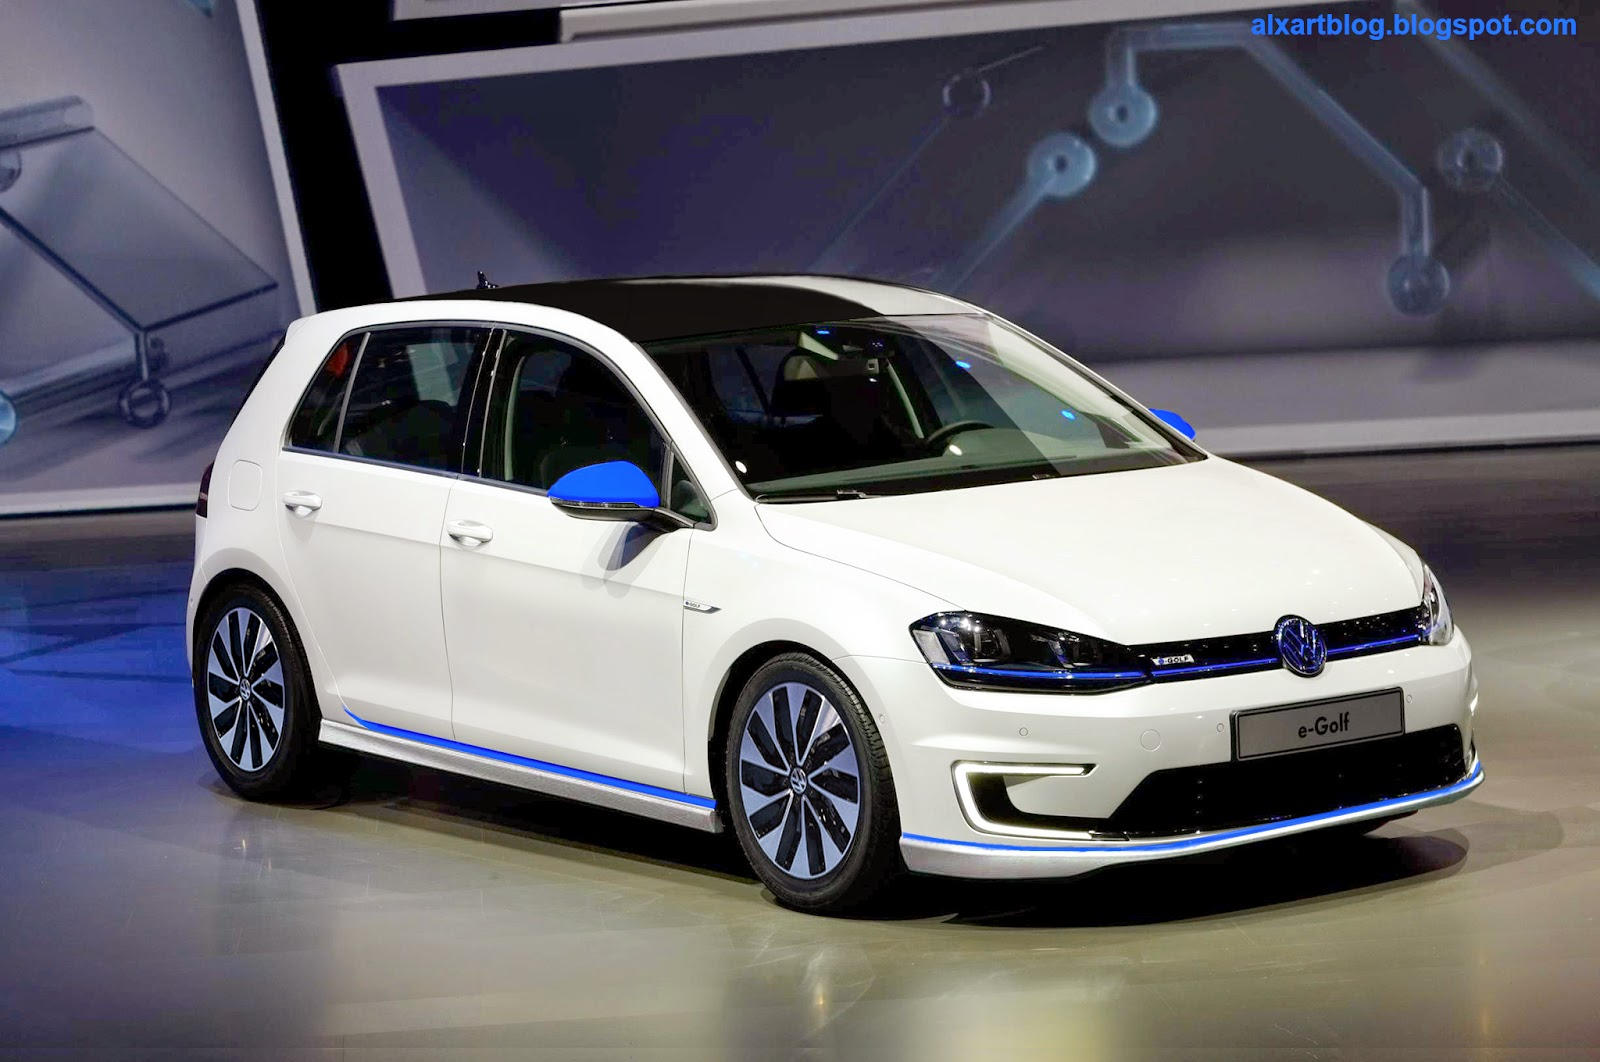 alxart blog possible next car the all electric 2015 vw e golf. Black Bedroom Furniture Sets. Home Design Ideas